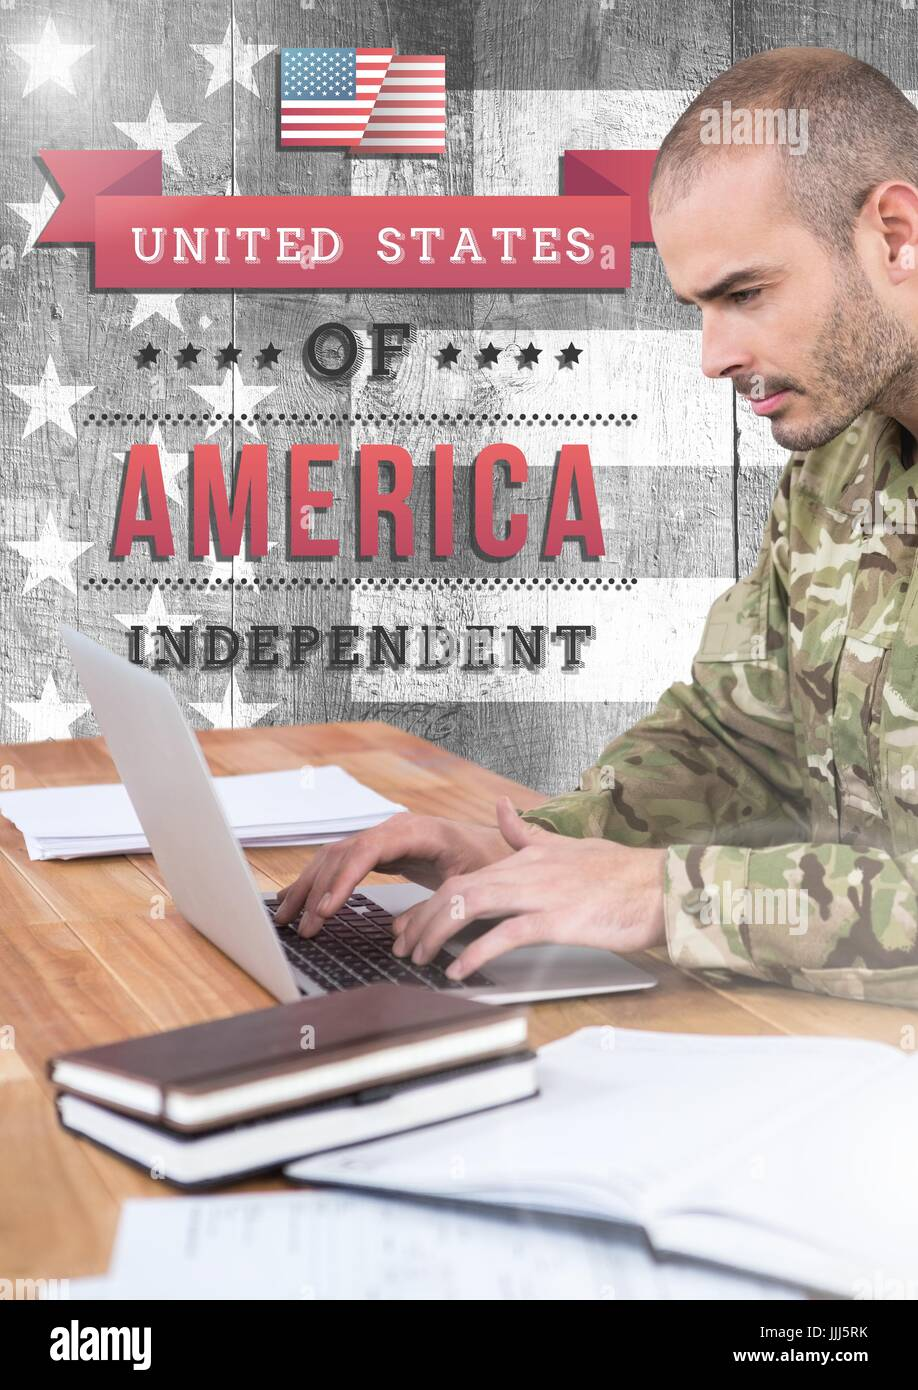 Soldier using a laptop in office with independence day scriptures - Stock Image